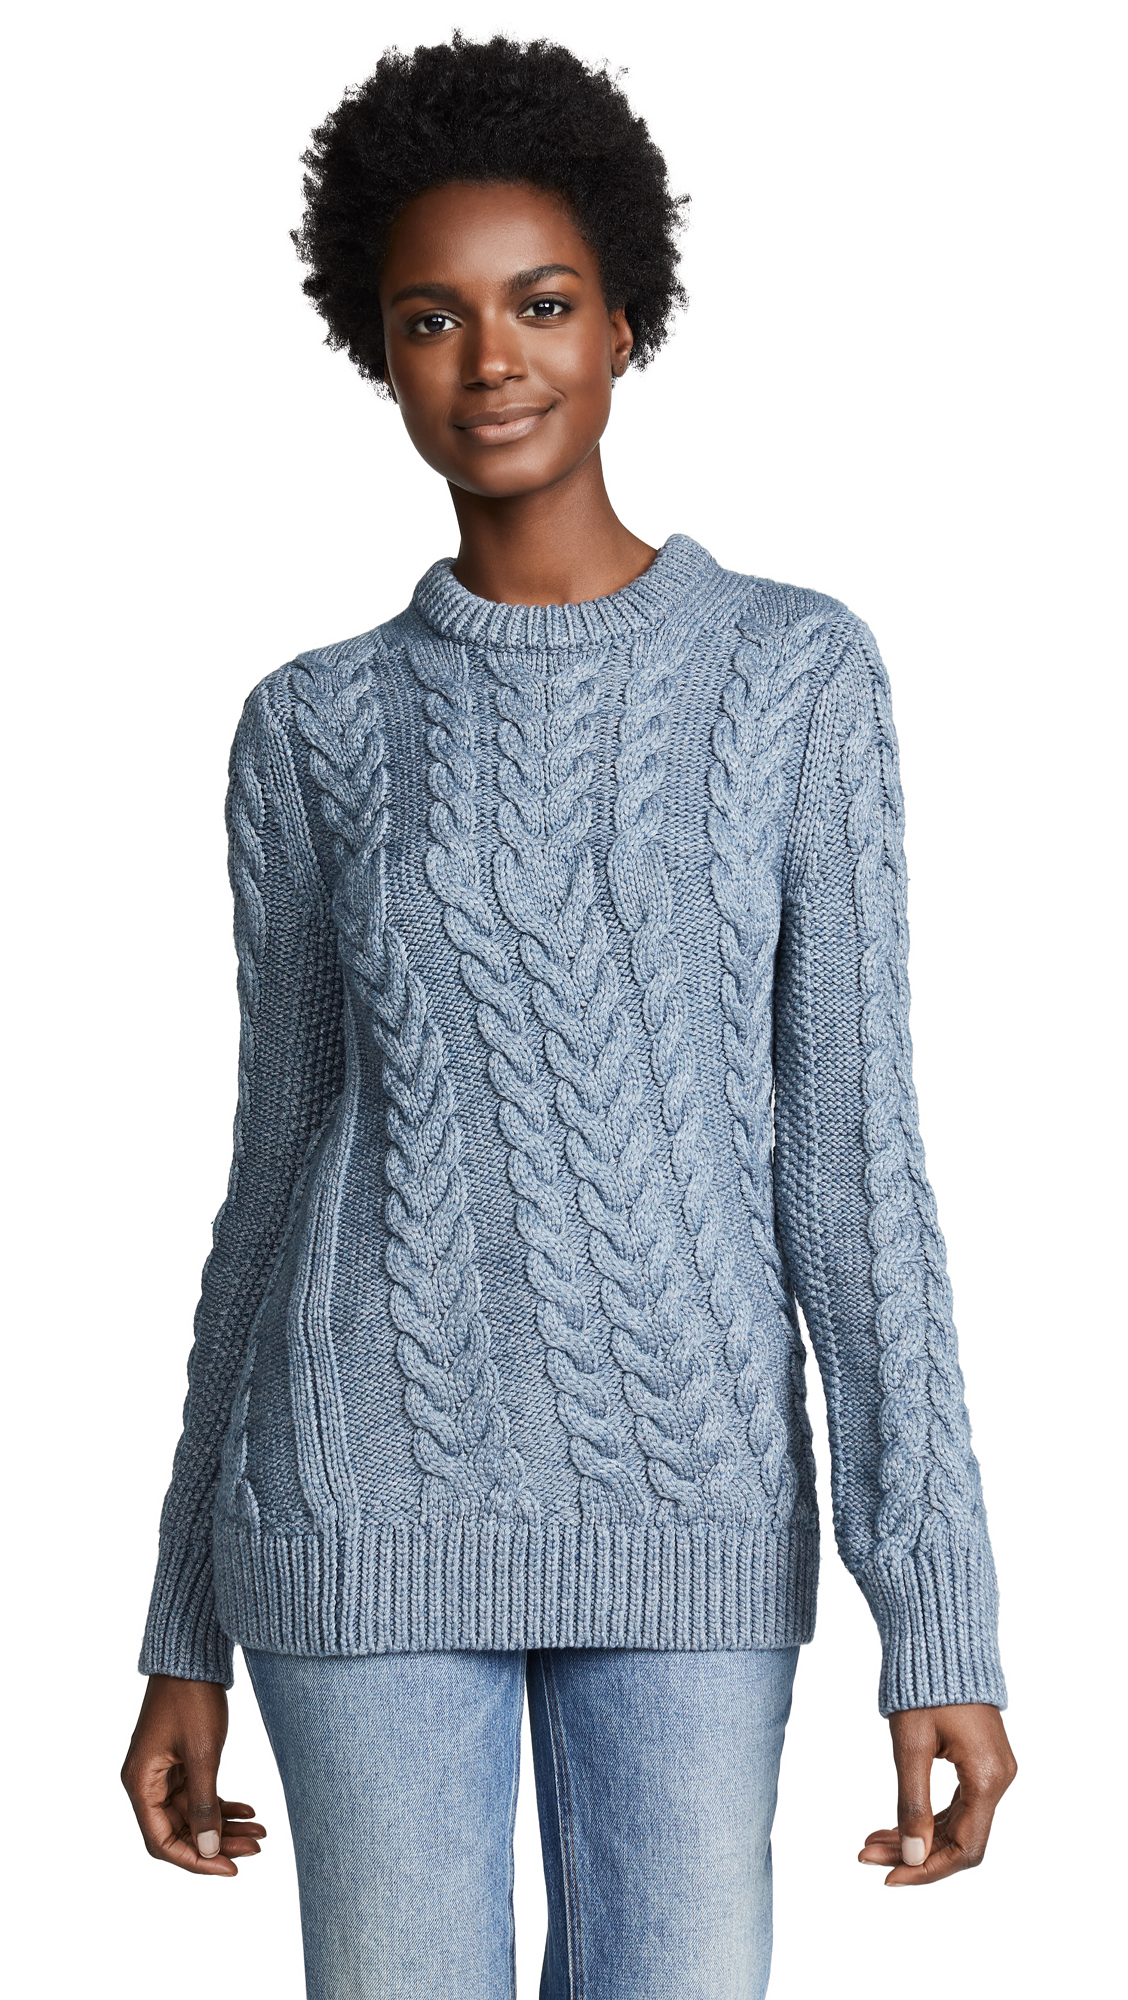 Theory Twisting Cable Sweater - Denim